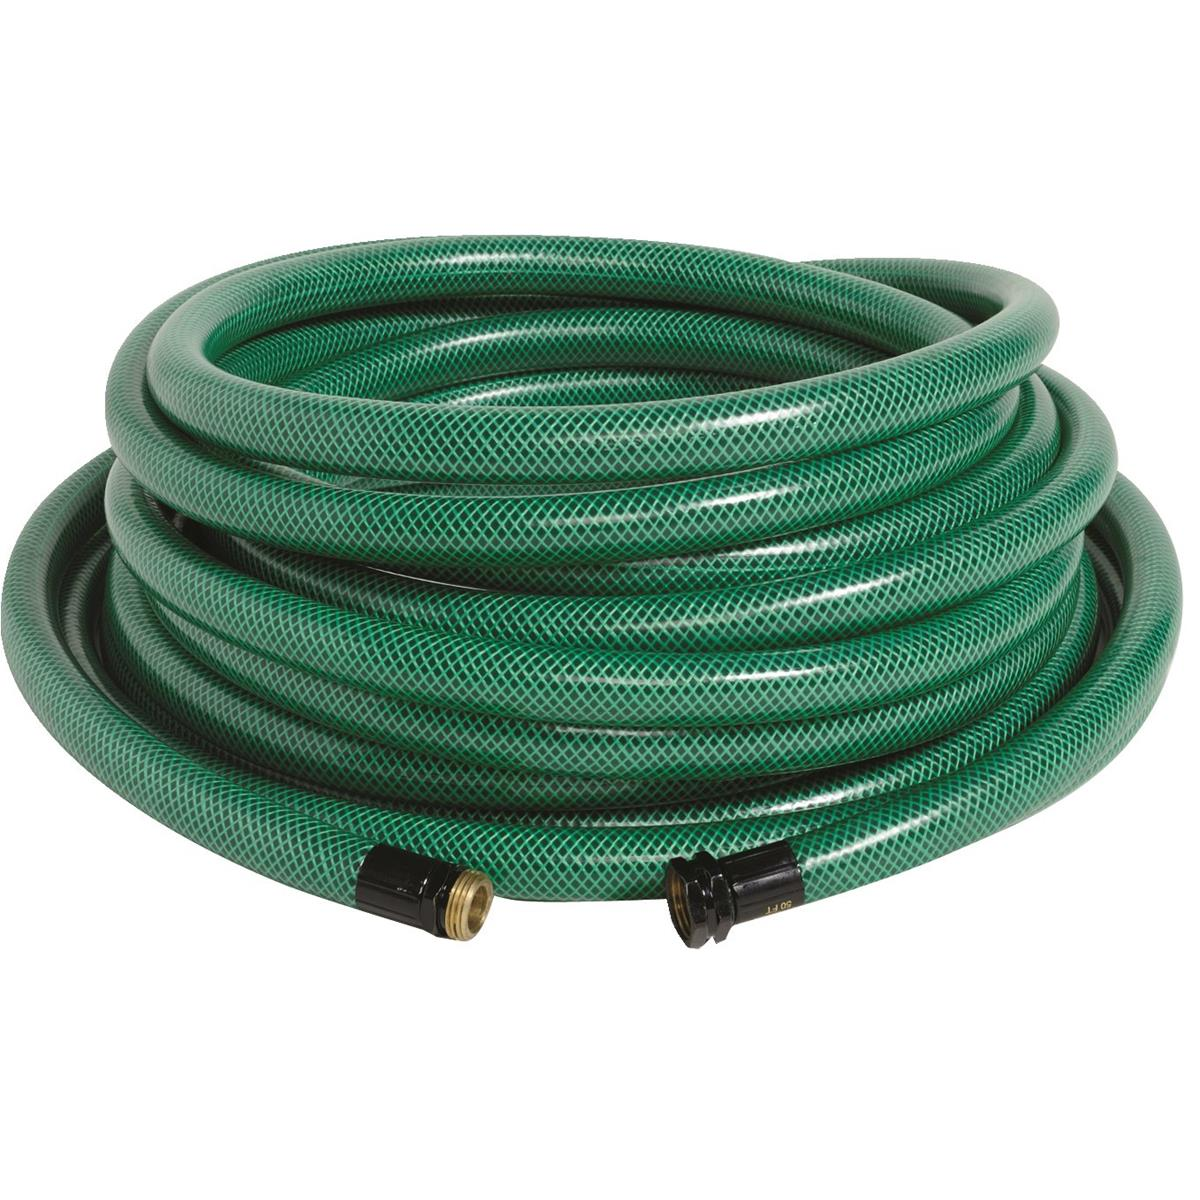 "KOCHEK Extreme-Duty PVC Irrigation Hose with 3/4"" I.D."